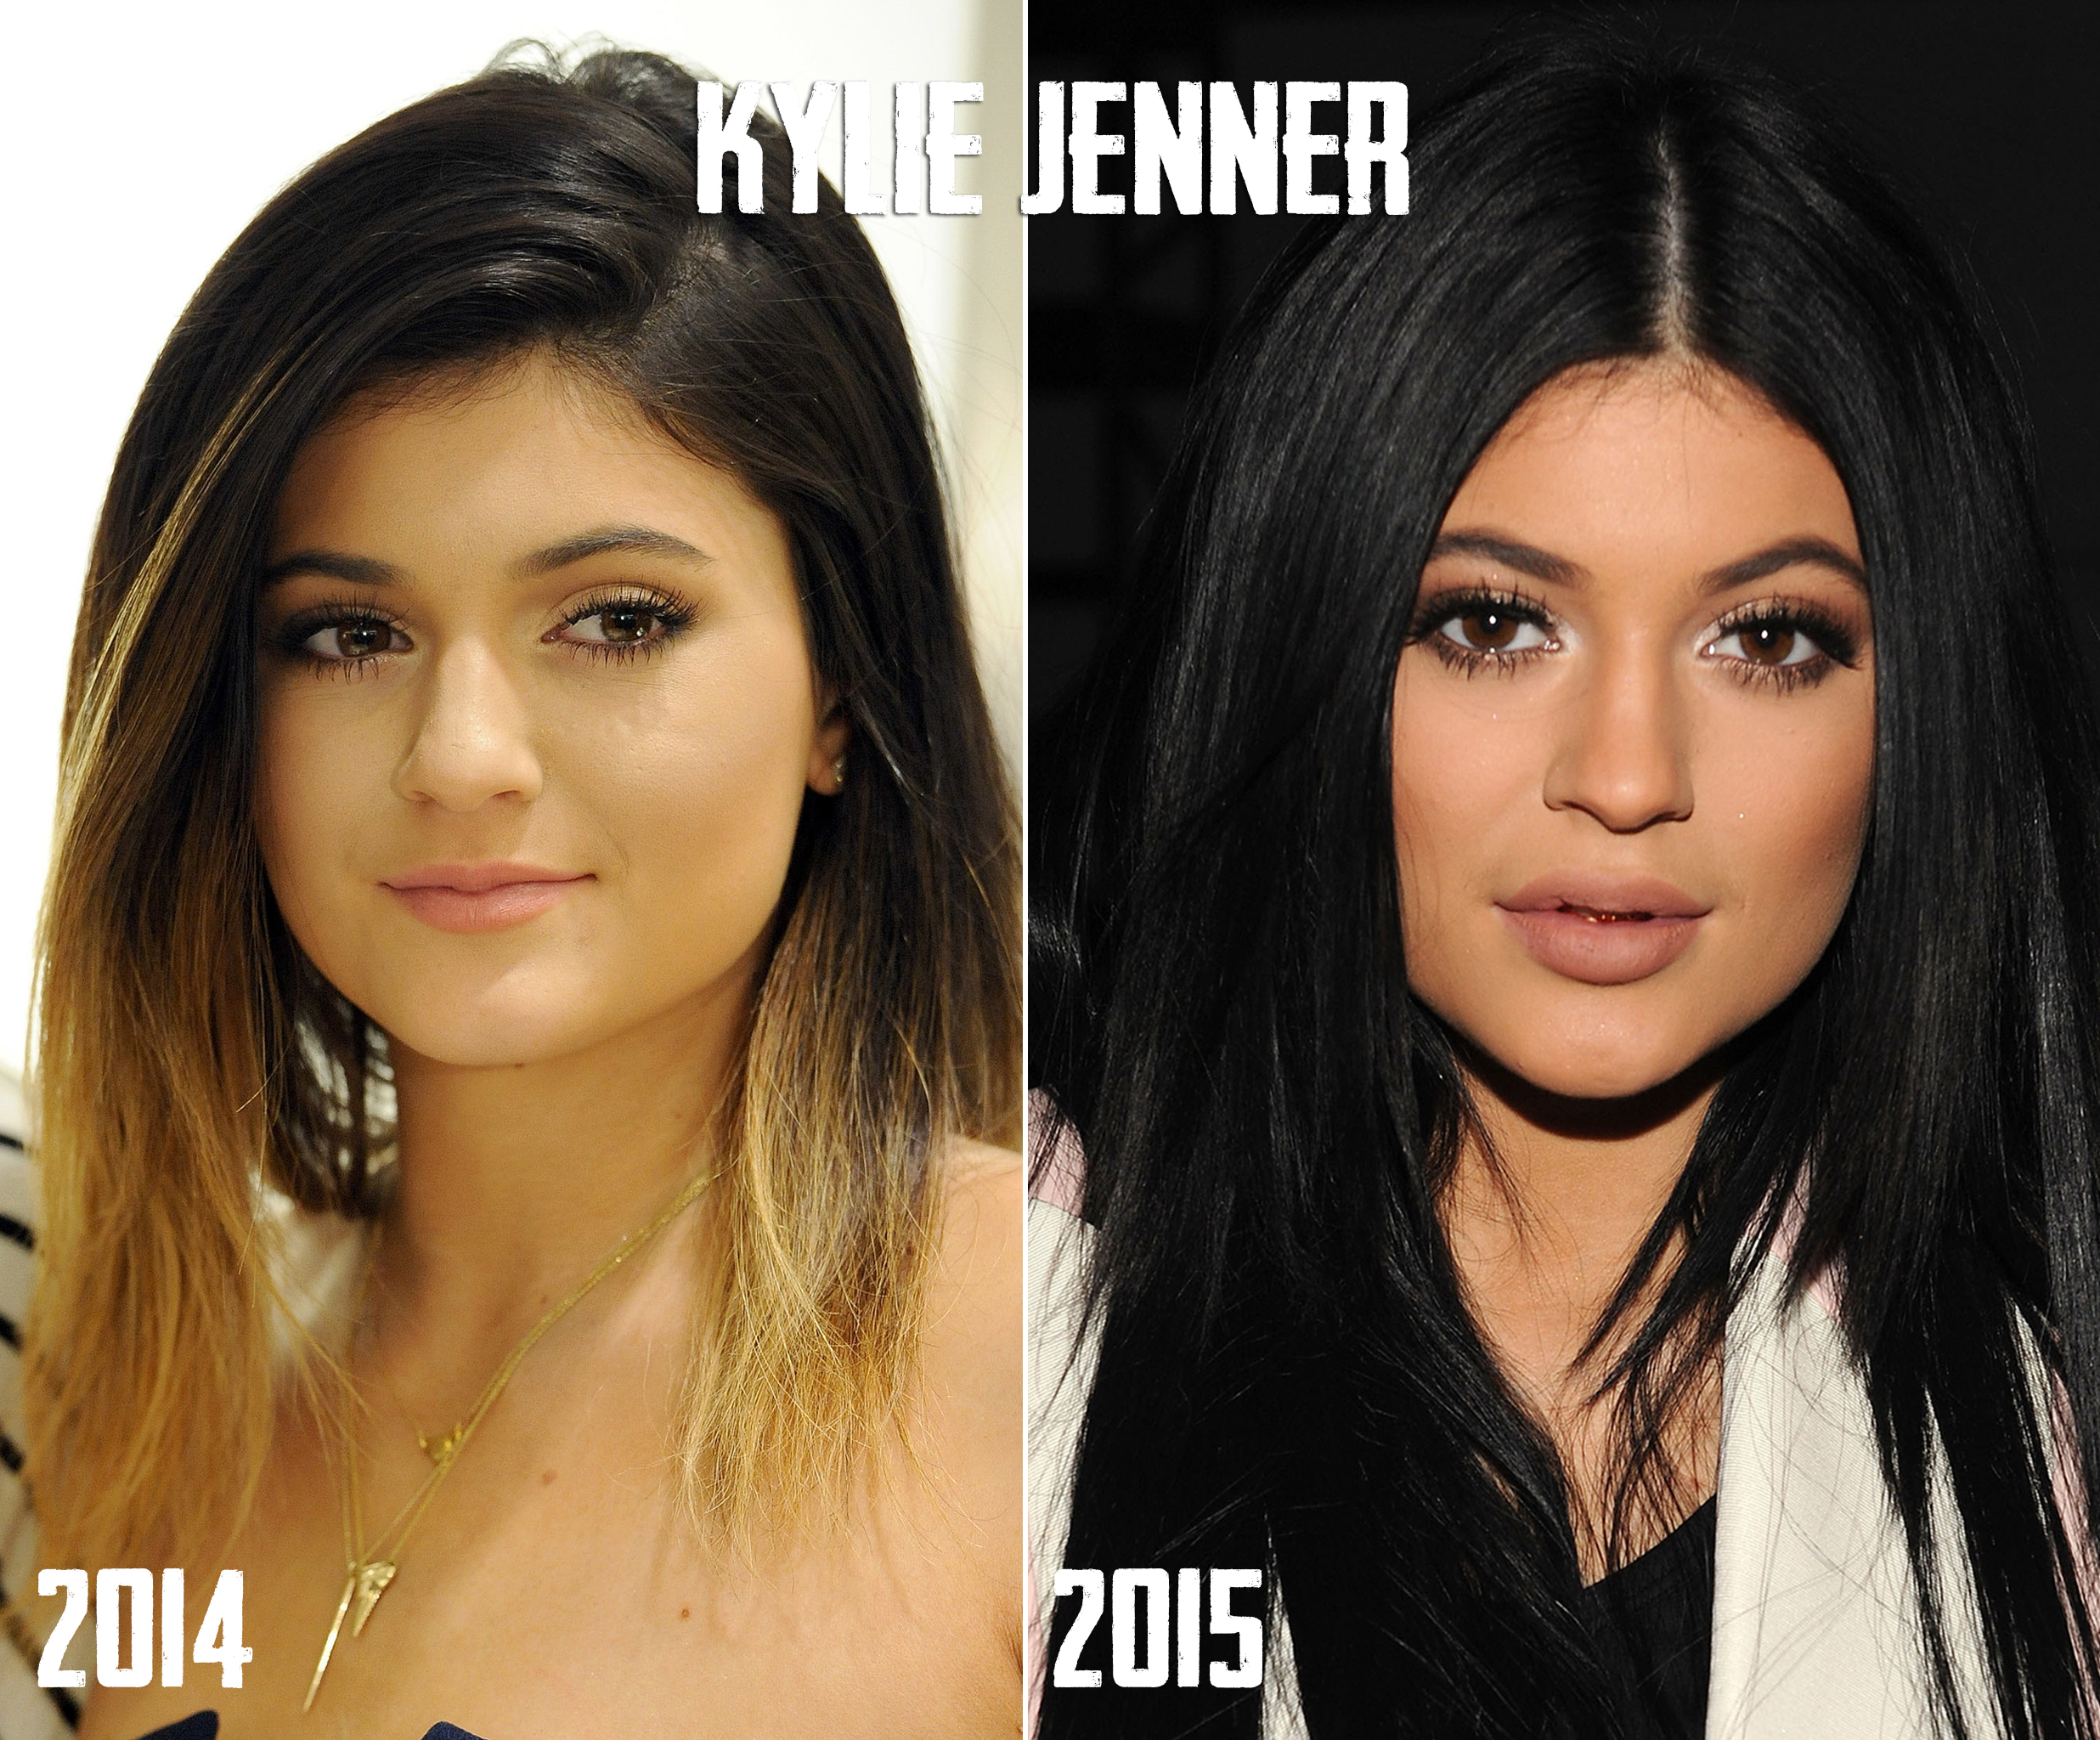 Kylie-Jenner-Lips-Before-After-Dr-Siew